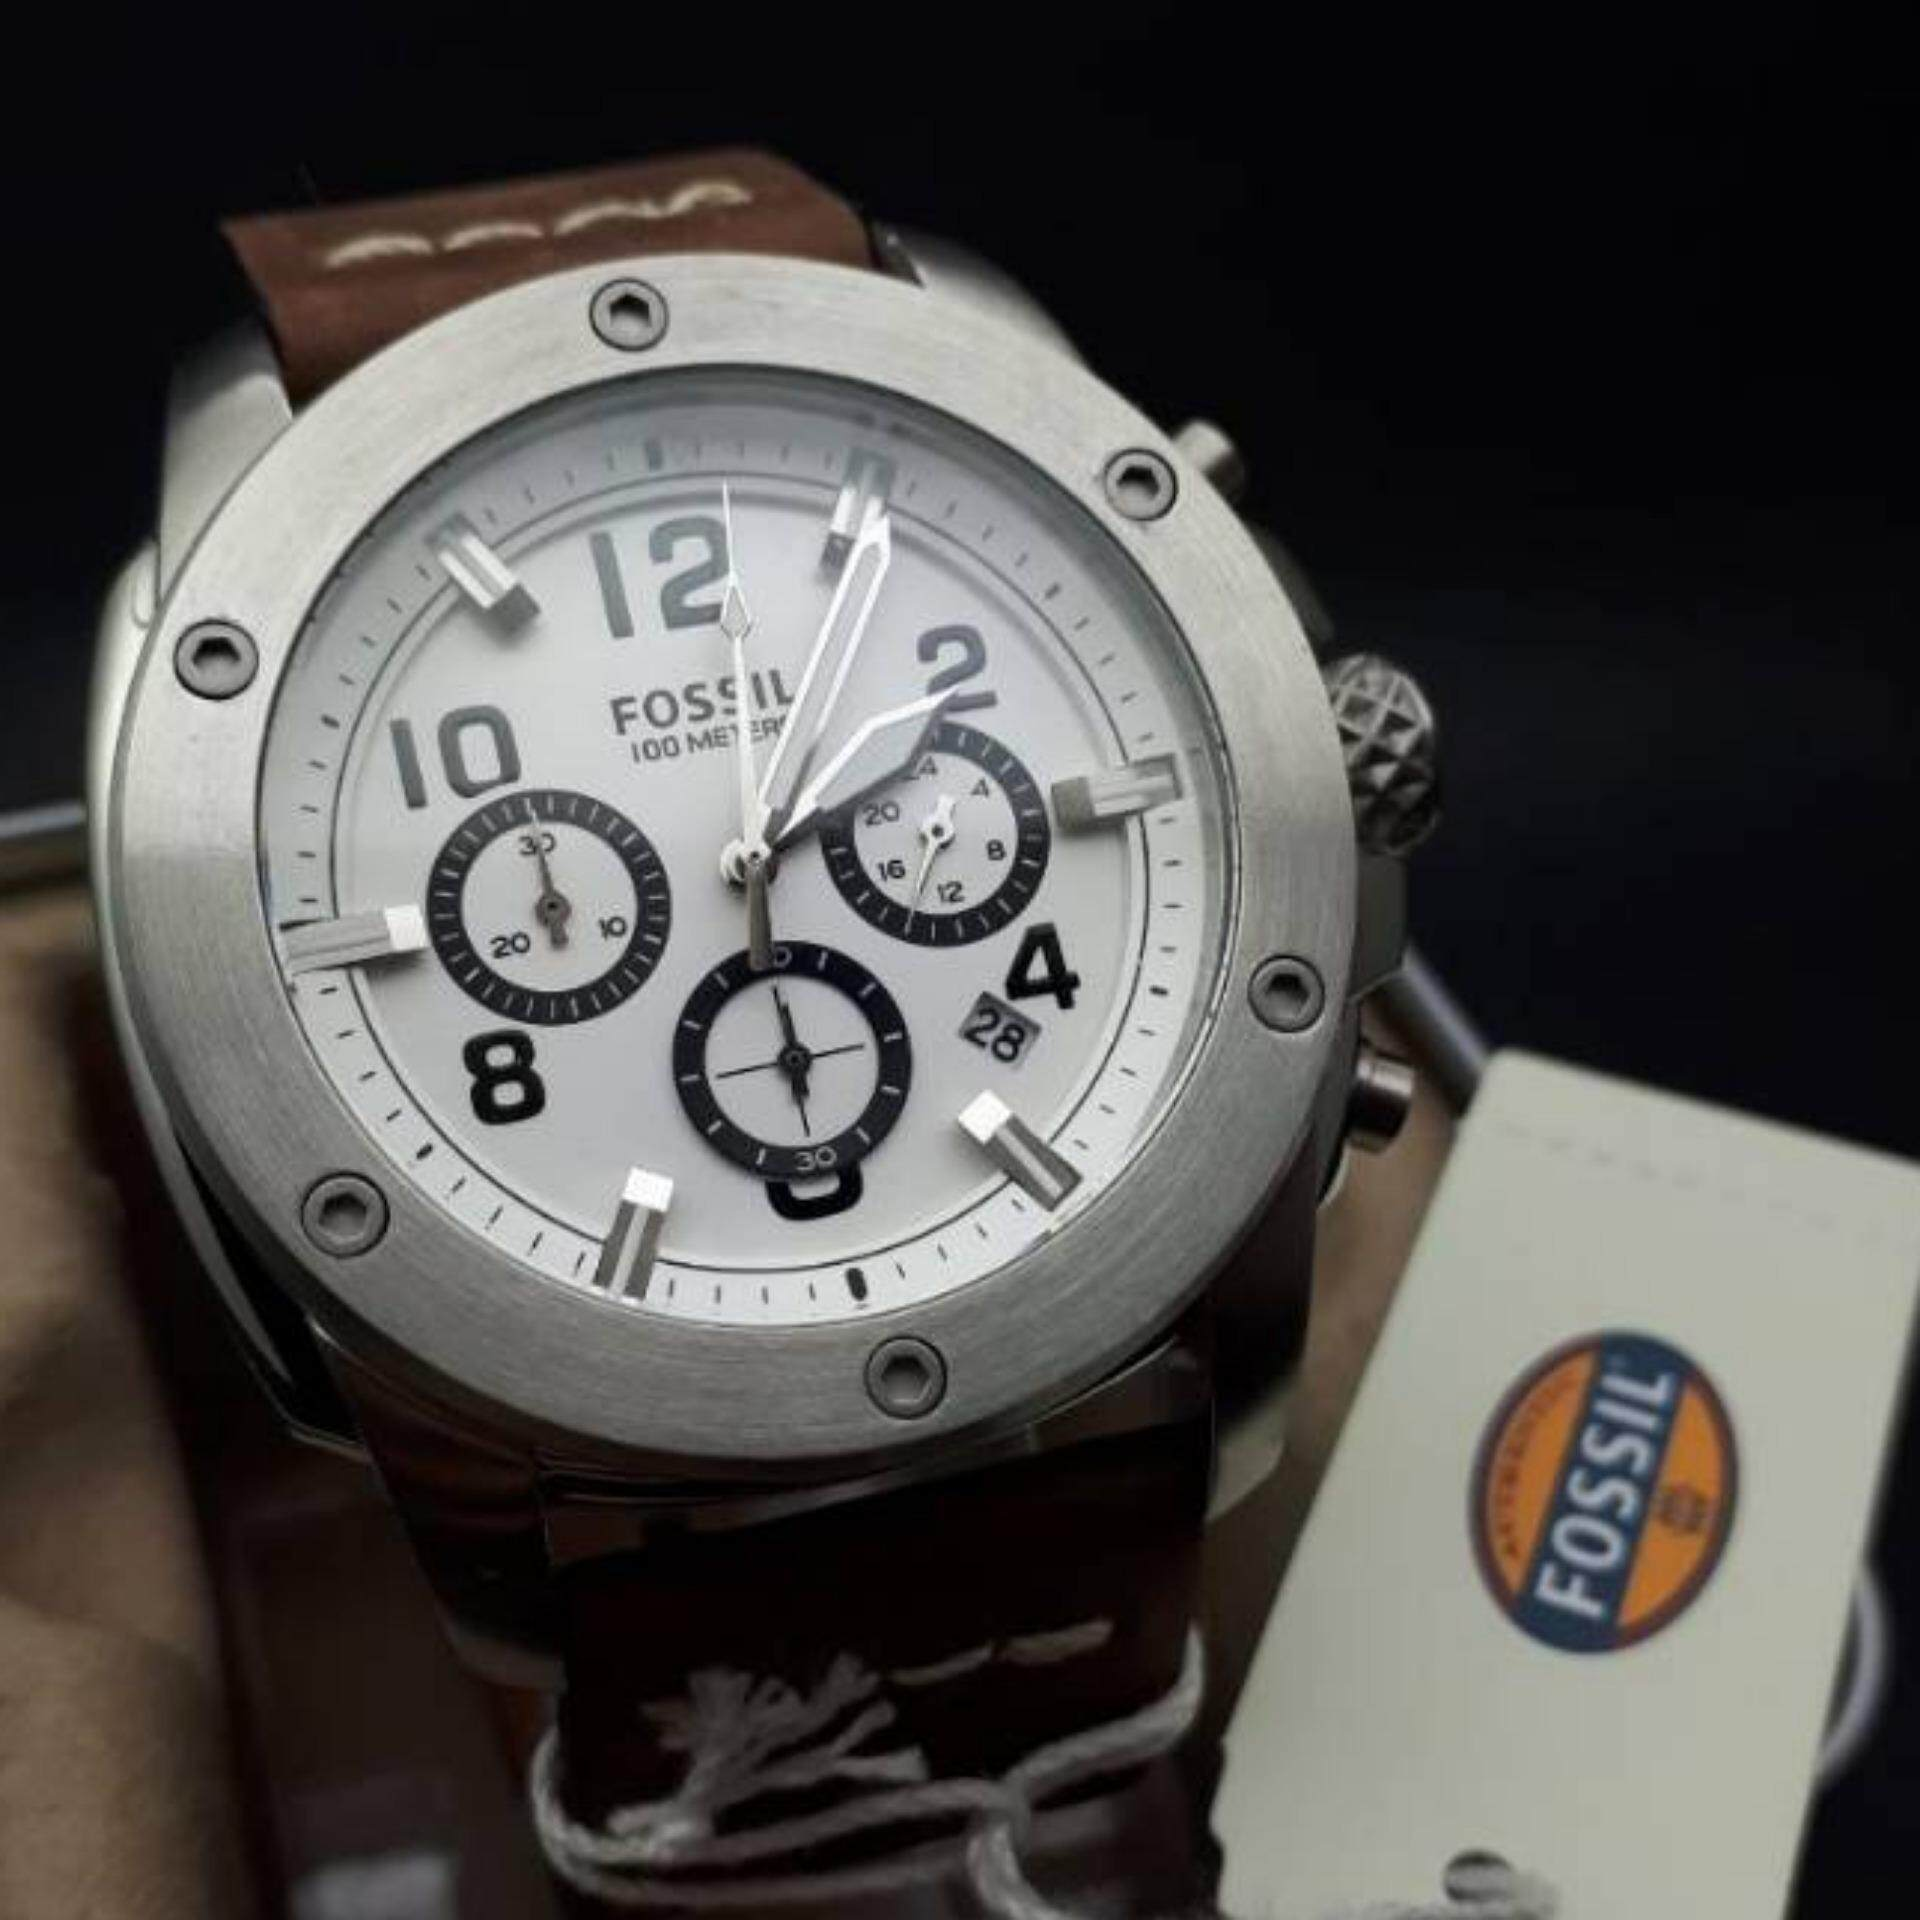 Fossil Products For Men Women The Best Price In Malaysia Jam Tangan Automatic Brown Leather Me3027 Special Promotion Ffs4835 Grant Blue Navy Watch